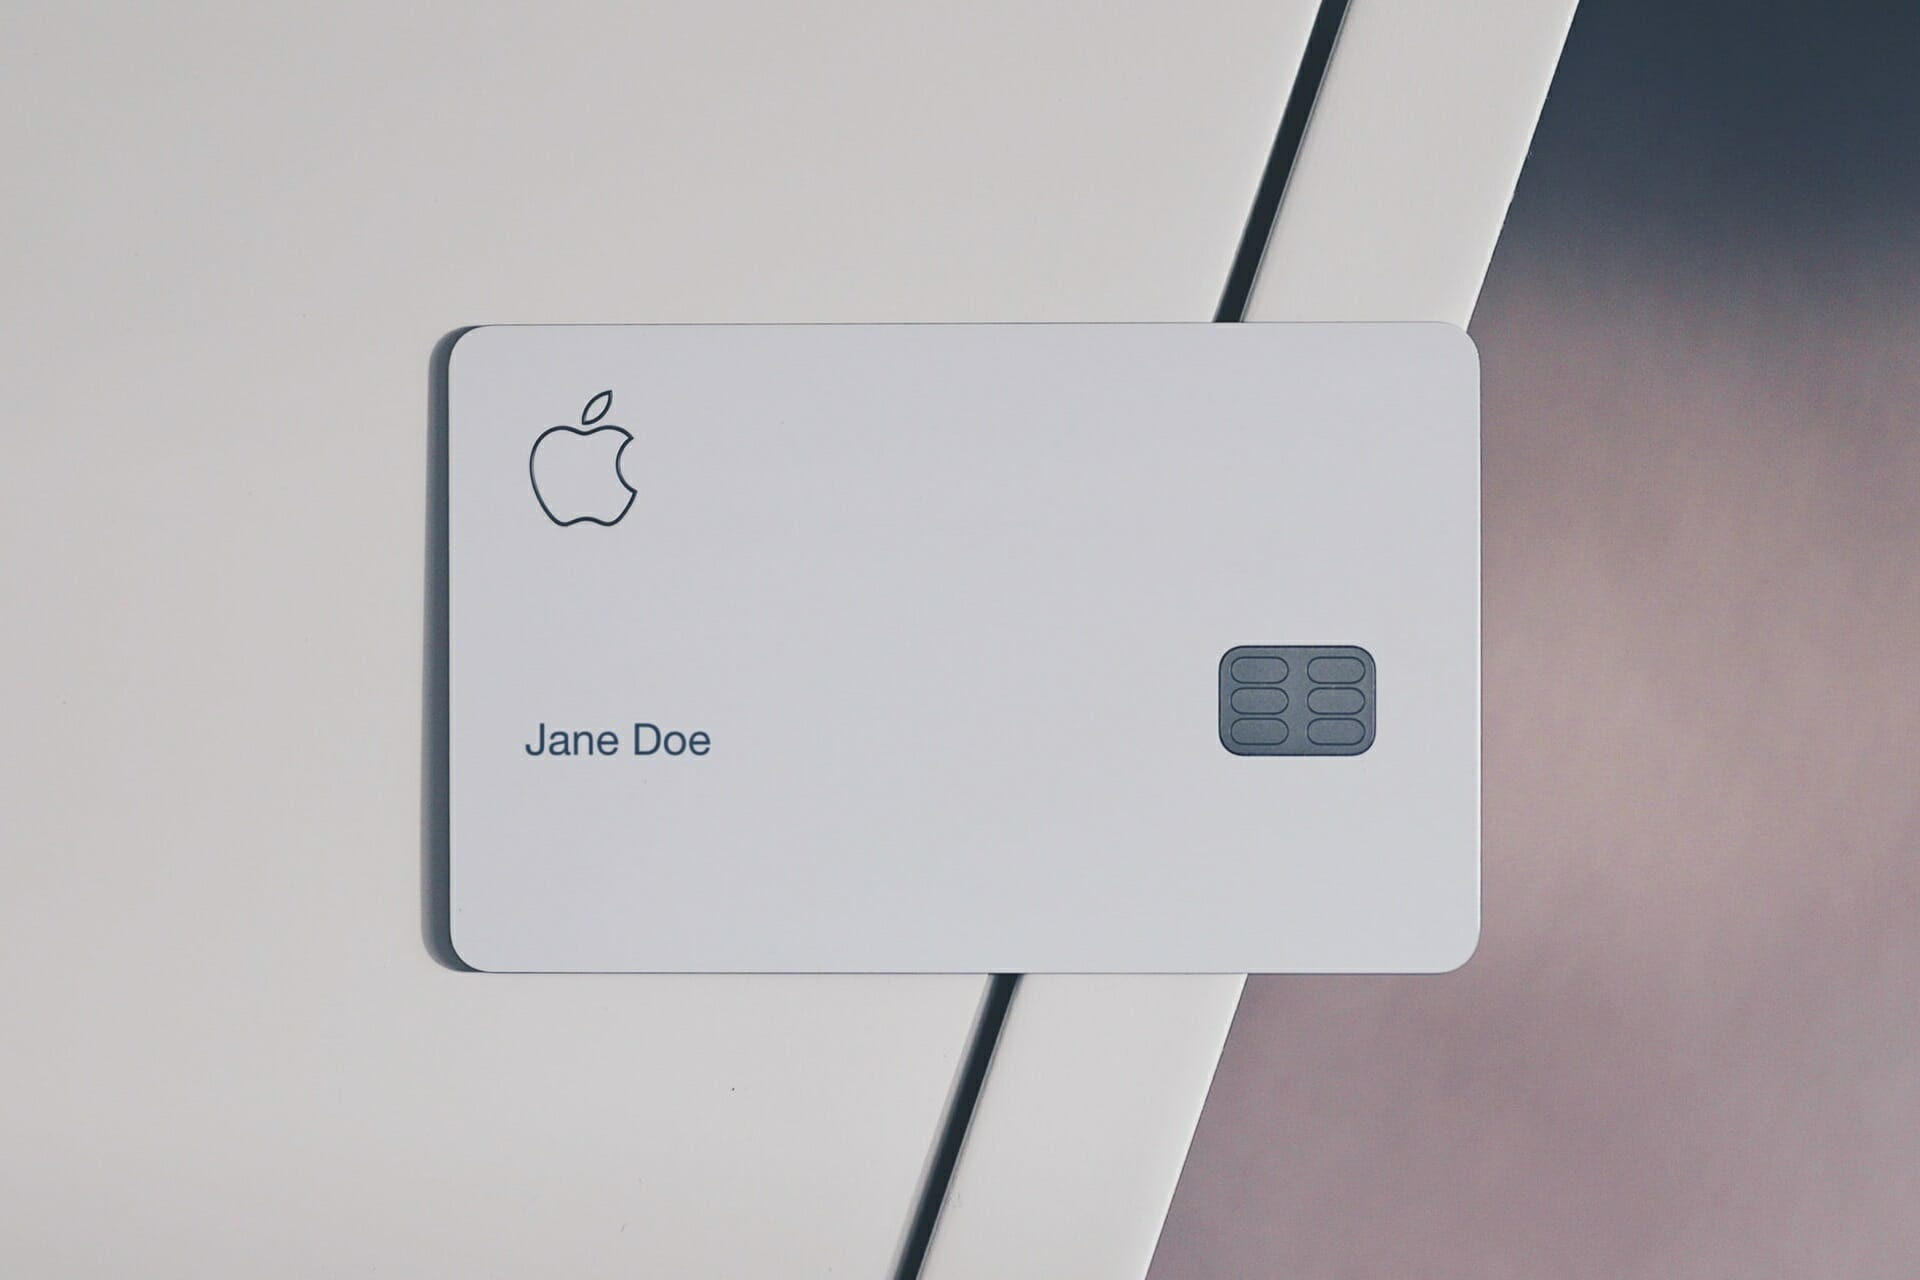 Apple card's privacy policy update allows for more data sharing